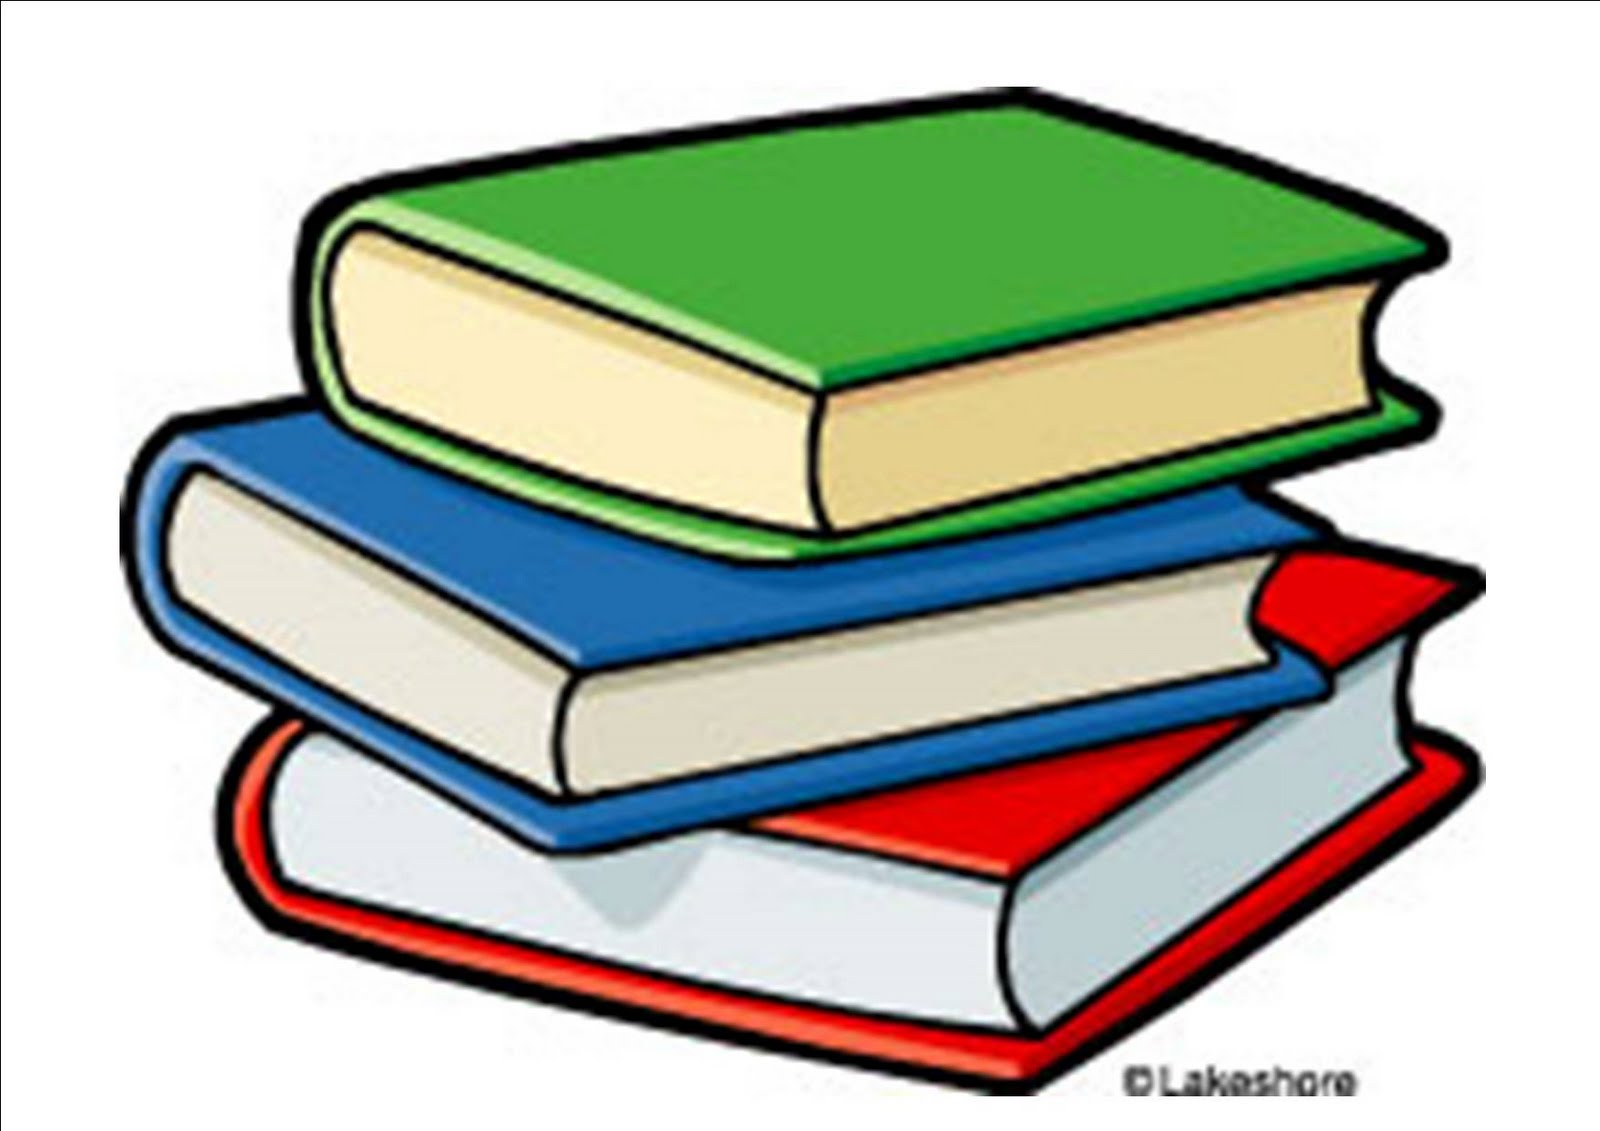 books clipart soon coming month past read panda messier giveaways actually few ve